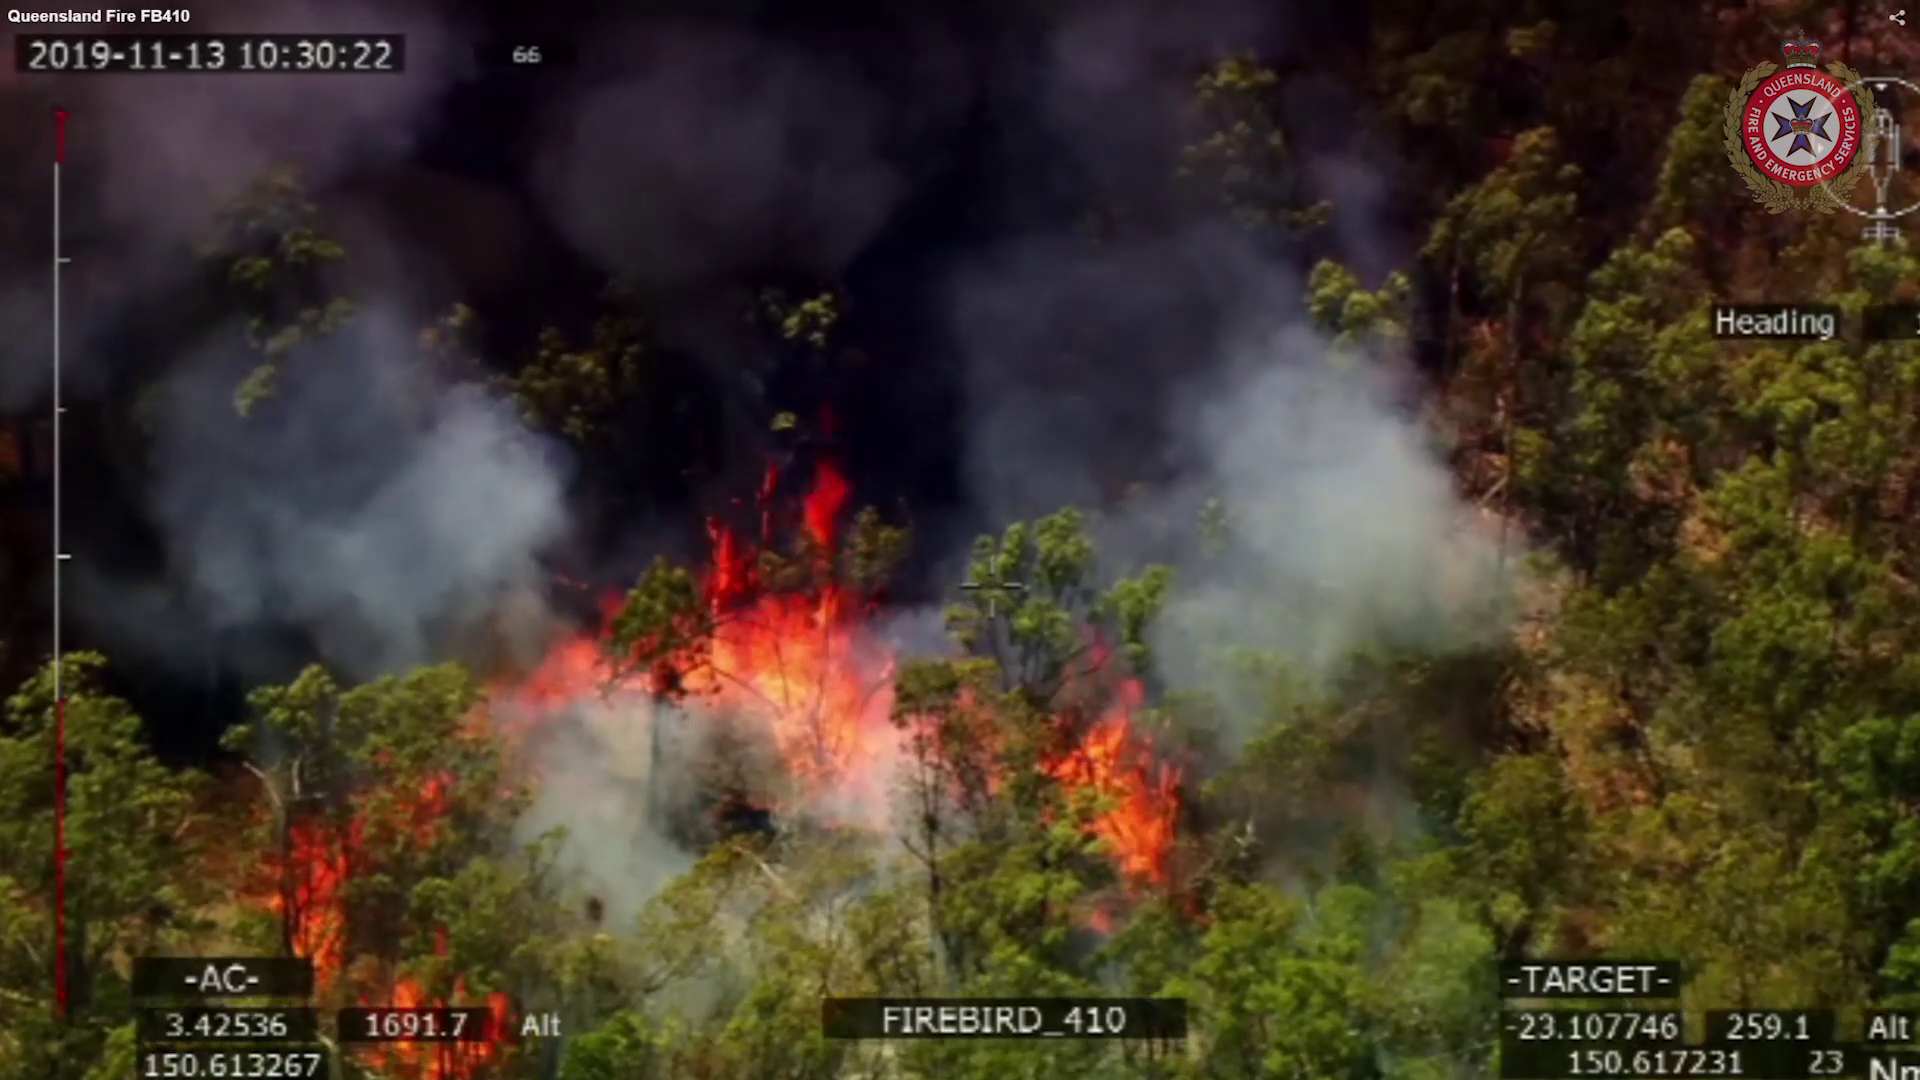 Aerial footage of the Queensland Fires 13 November 2019